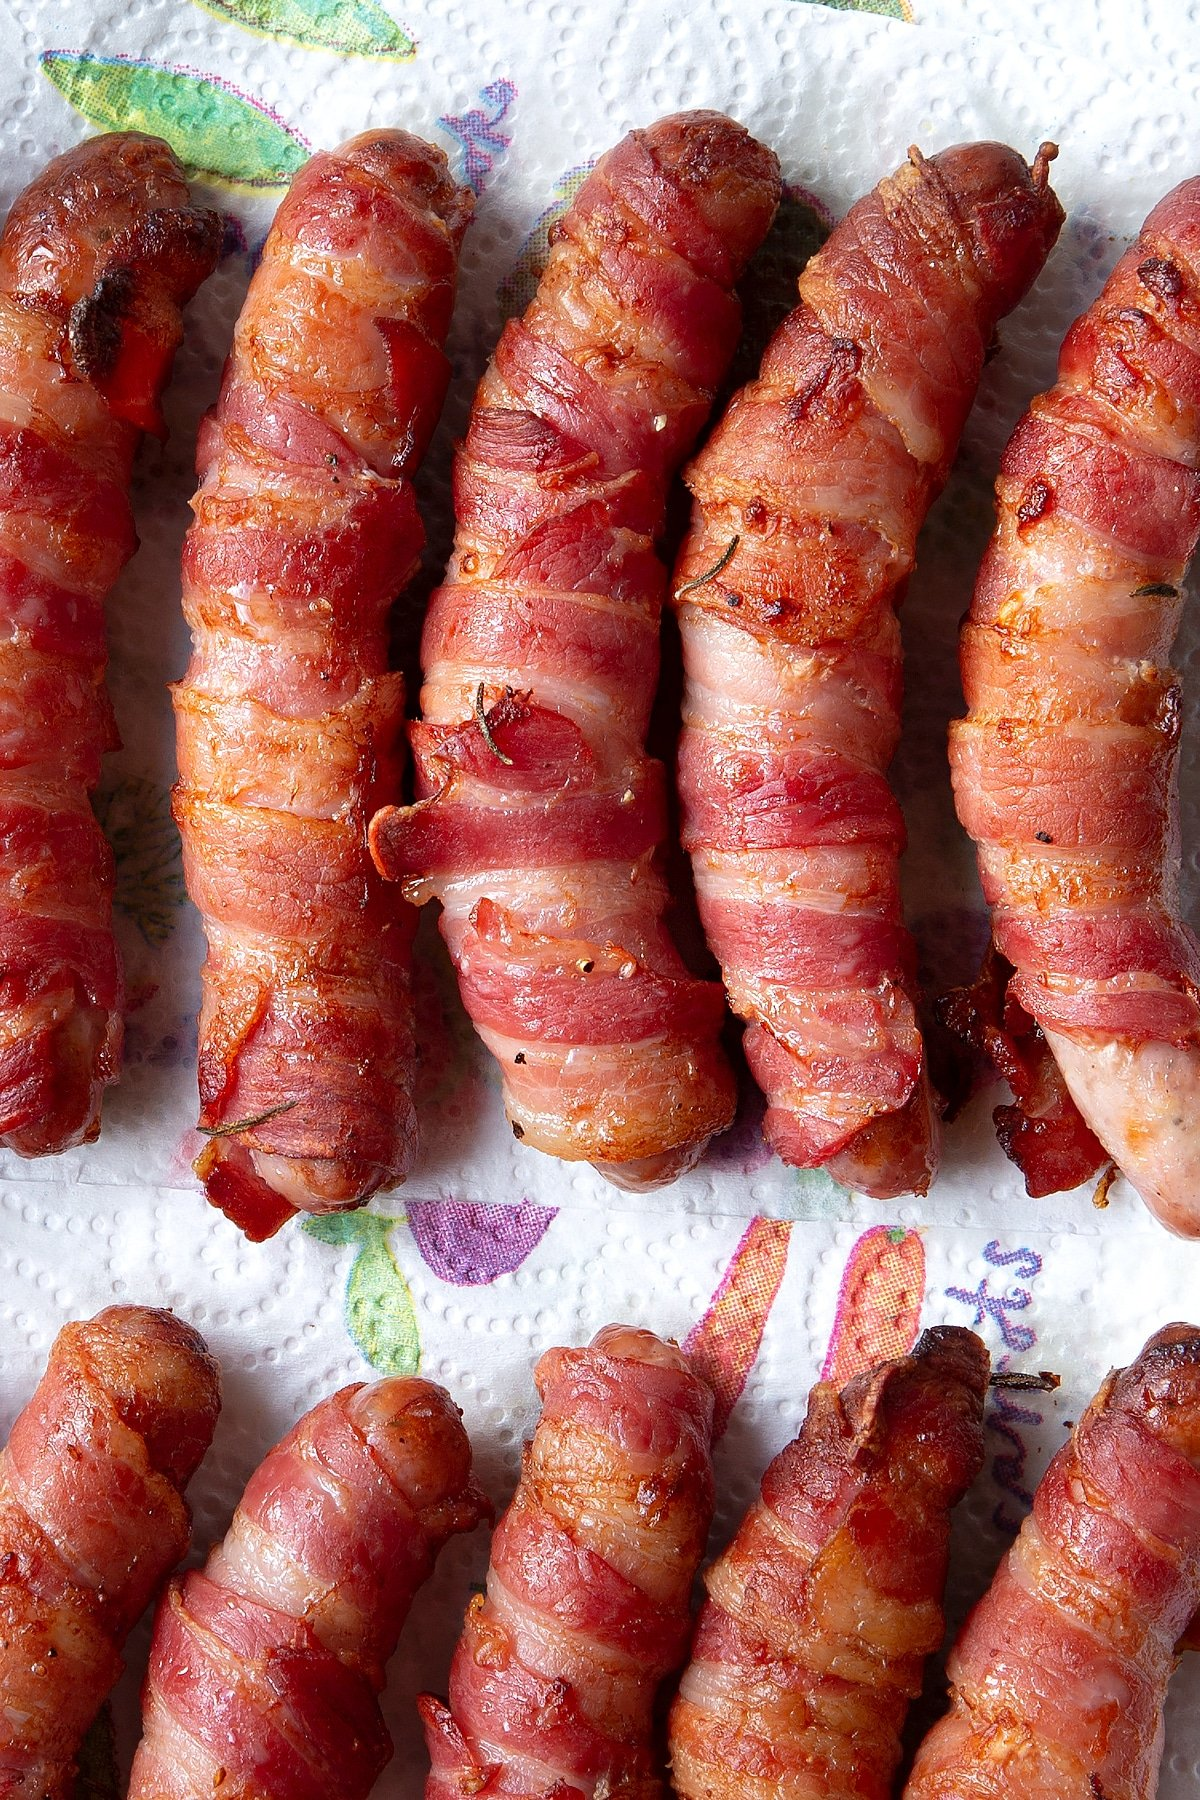 Close up overhead shot of the bacon wrapped sausages cooling on a paper towel.